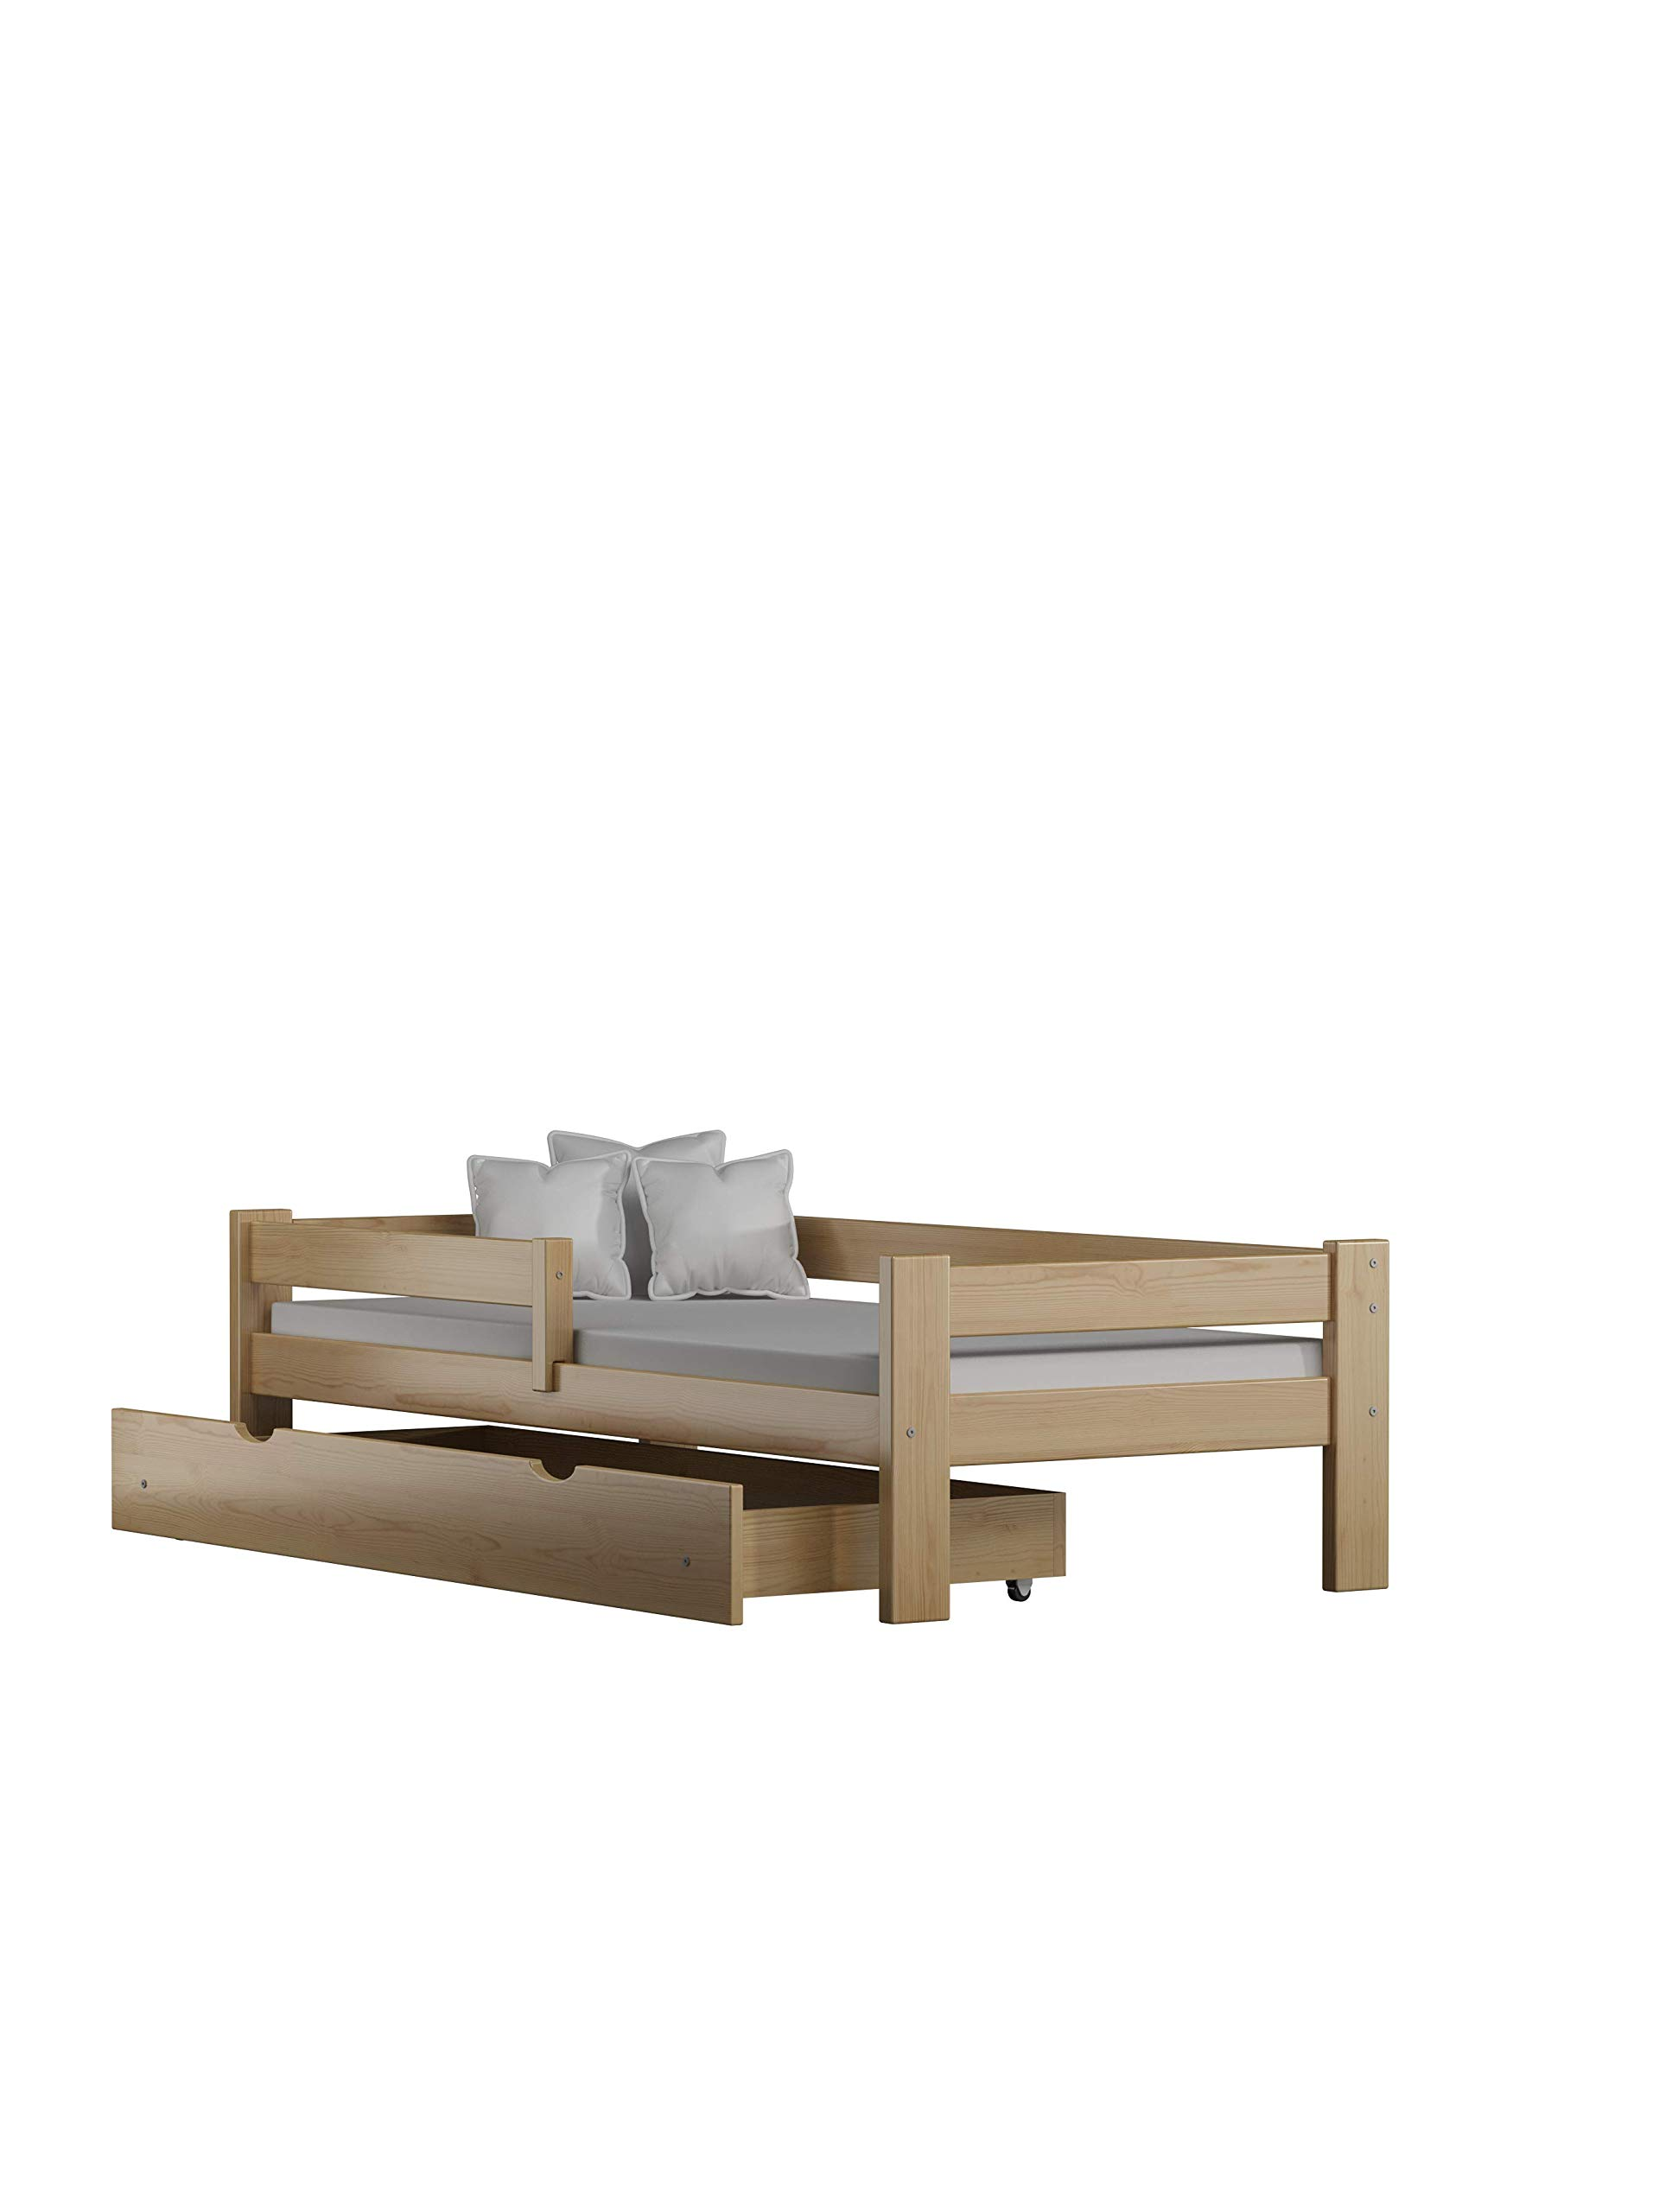 Children's Beds Home Solid Pine Wood Single Bed - Willow comes with Drawers and Foam Mattress Included (190x90, Natural) Children's Beds Home Internal Dimensions in cm's are 140x70, 160x80, 180x80, 180x90, 190x90, 200x90 (External: 147x78, 167x88, 187x88, 187x98, 197x98, 207x98) Total height up to the top of the safety barrier is 51cm Universal bed entrance - left or right side. Front barrier can also be removed at a later stage. Bed Frame has load capacity of up to 190kg 1